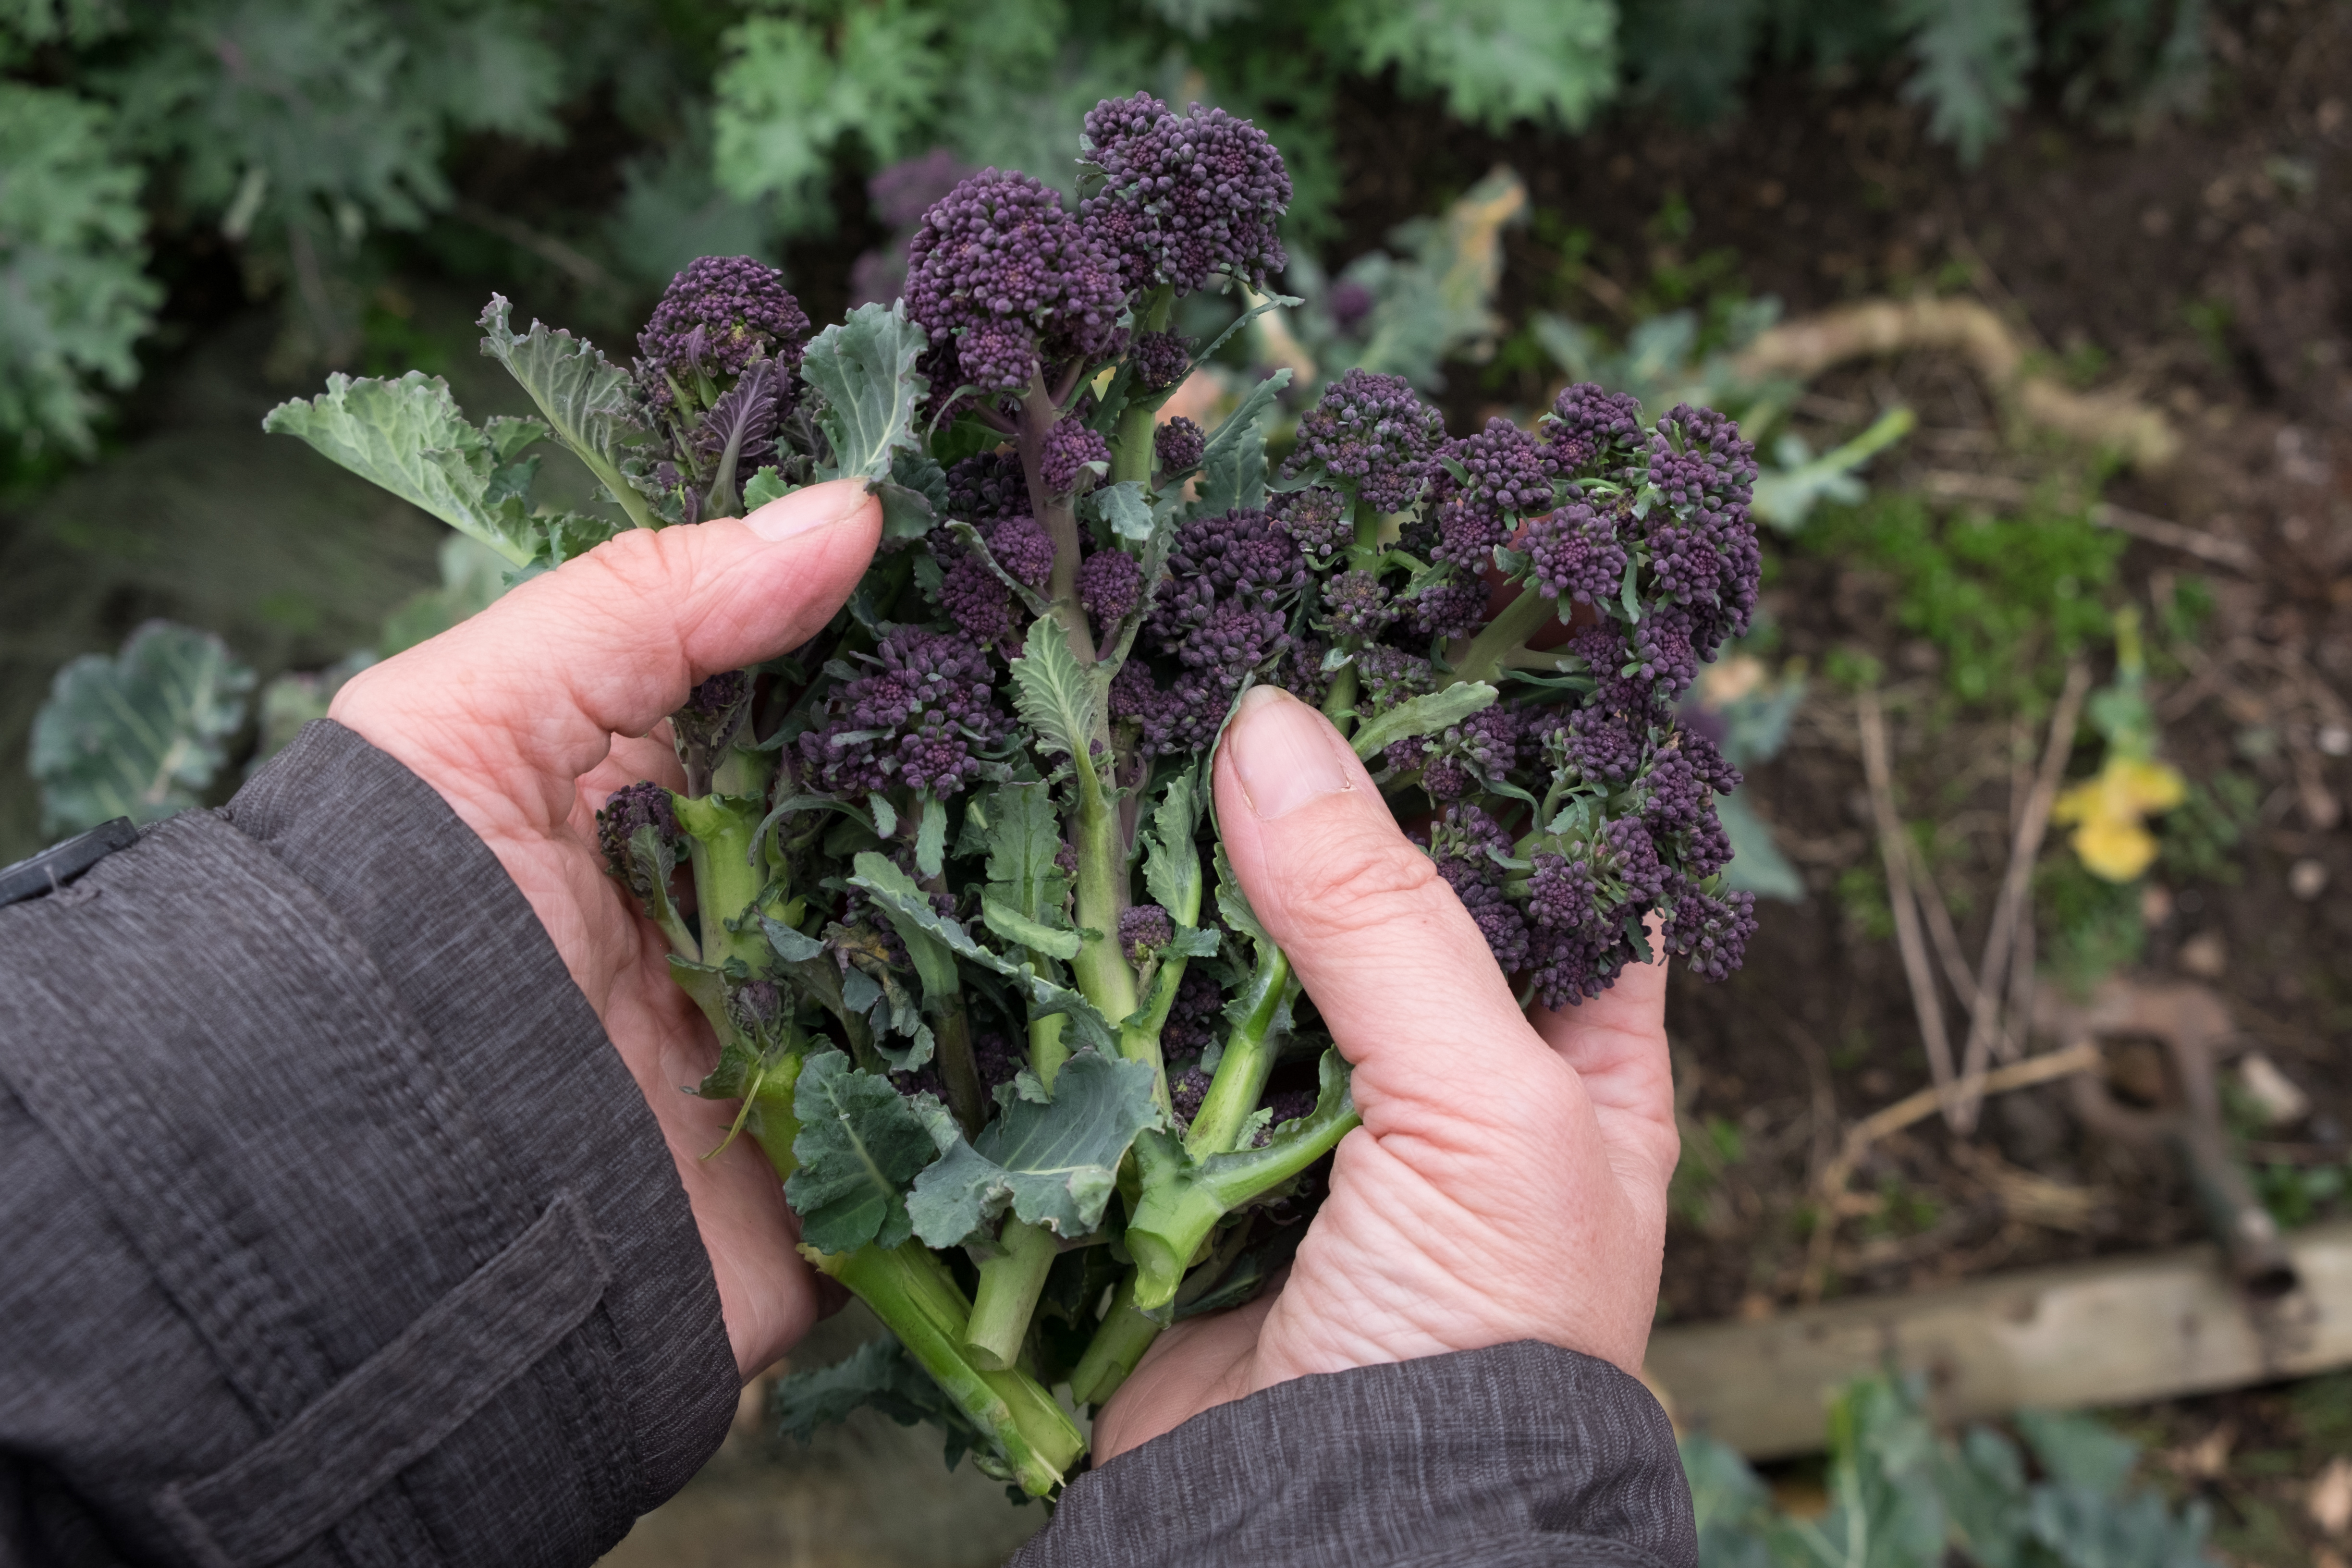 Hands holding fresh picked purple sprouting broccoli